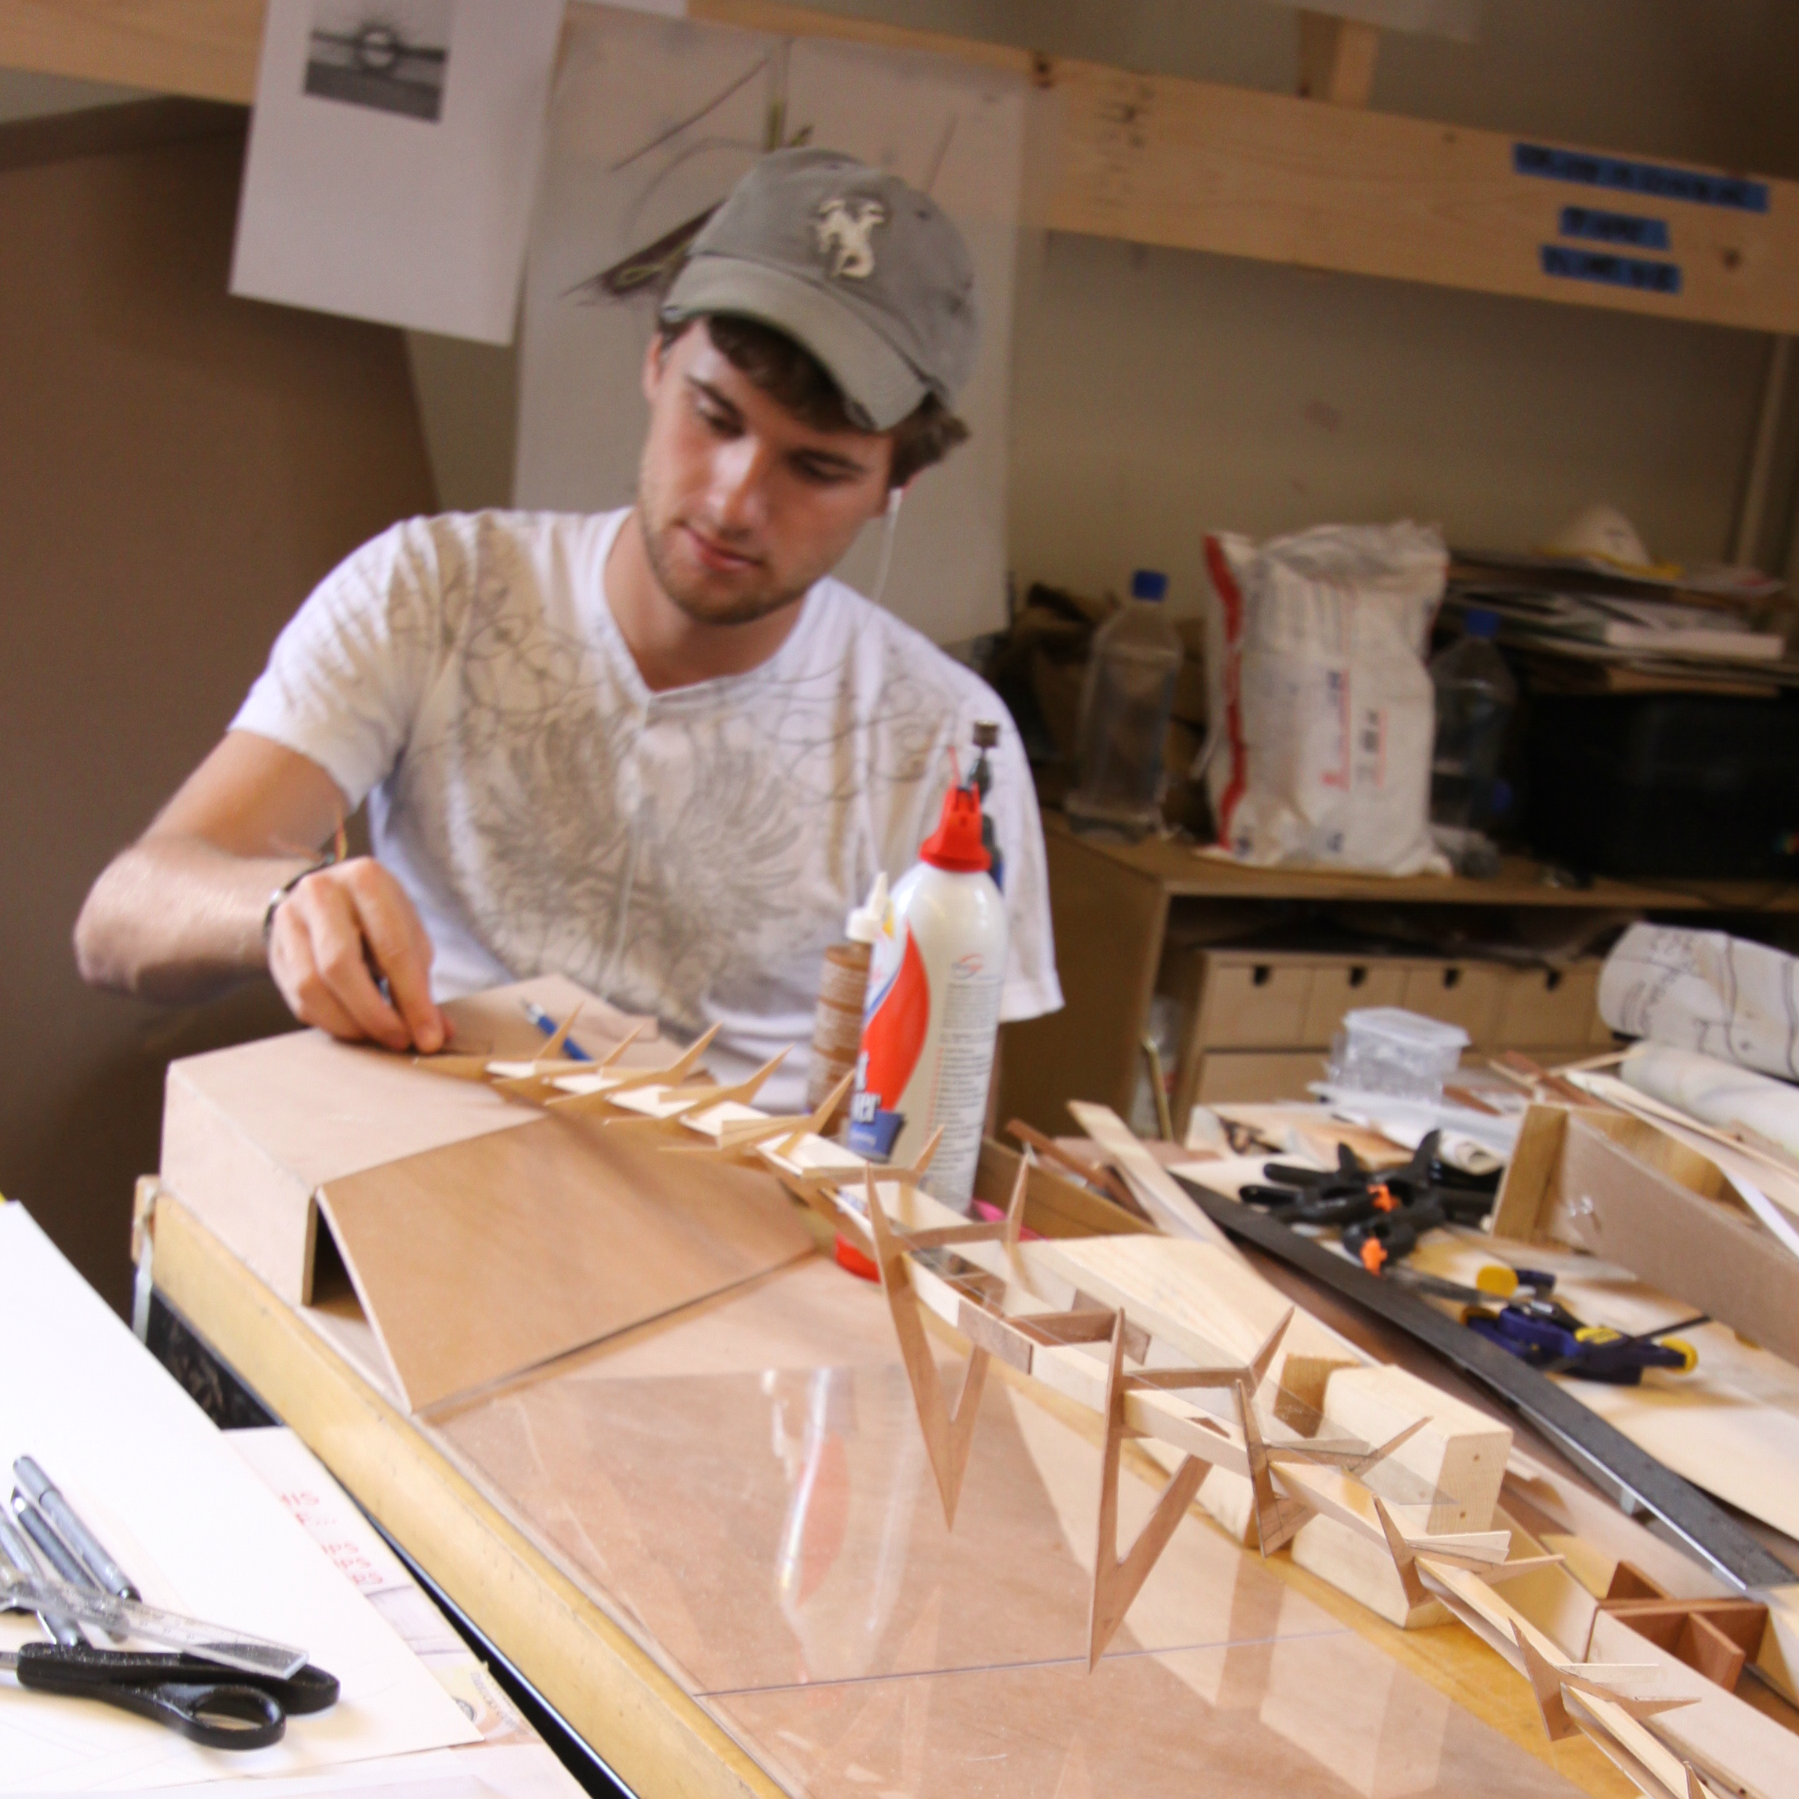 male student glueing a wooden model